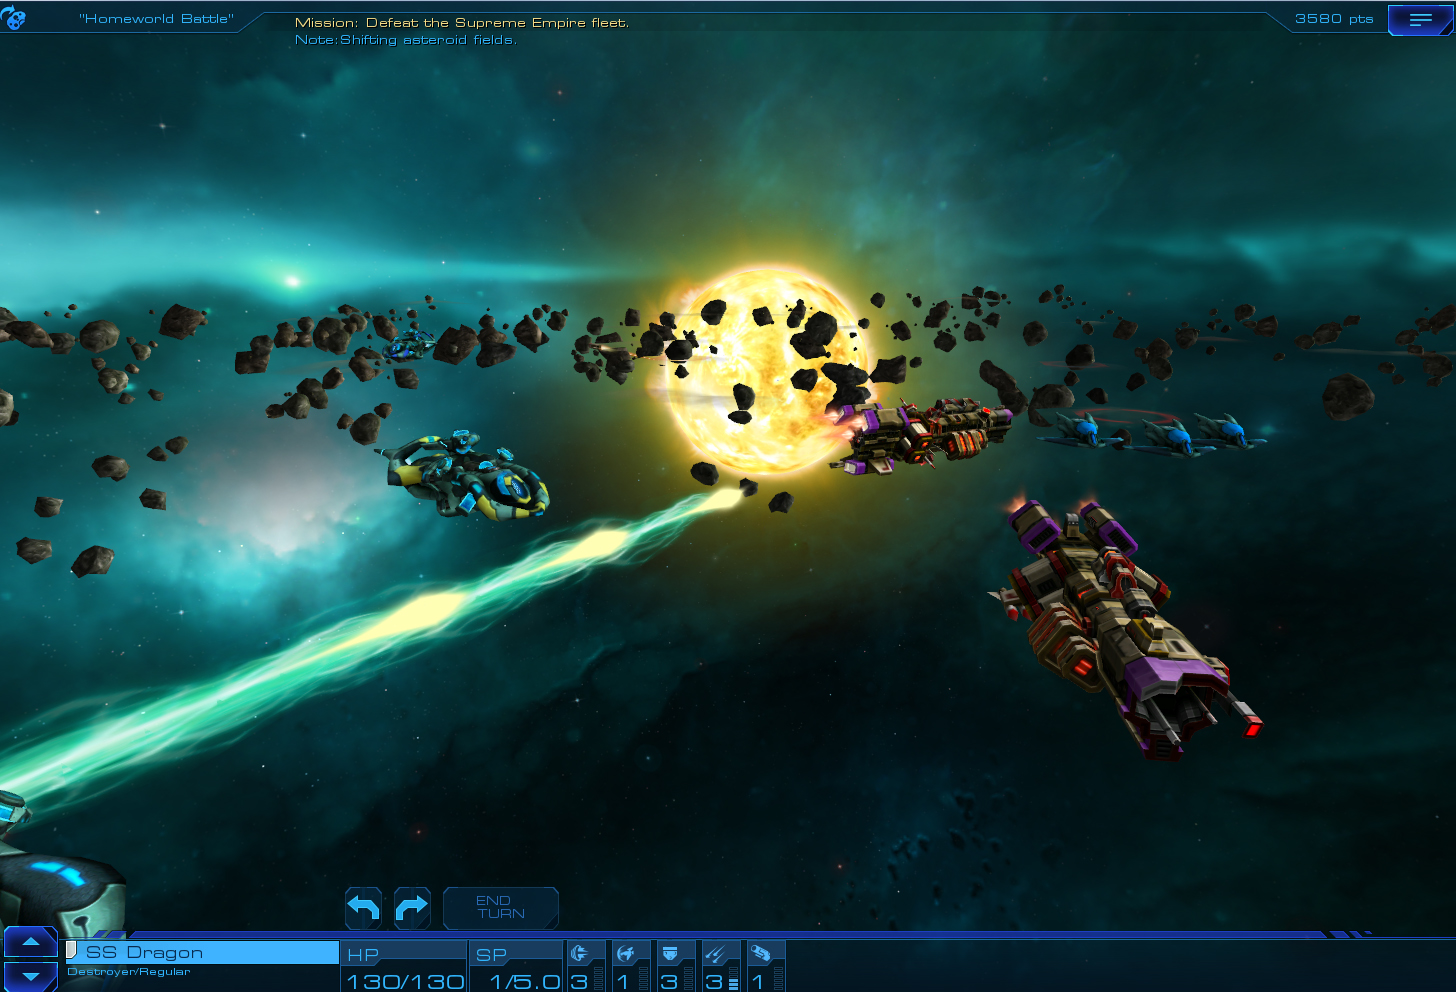 Gold Awarding-winning Sid Meier's Starships drops to its lowest price yet